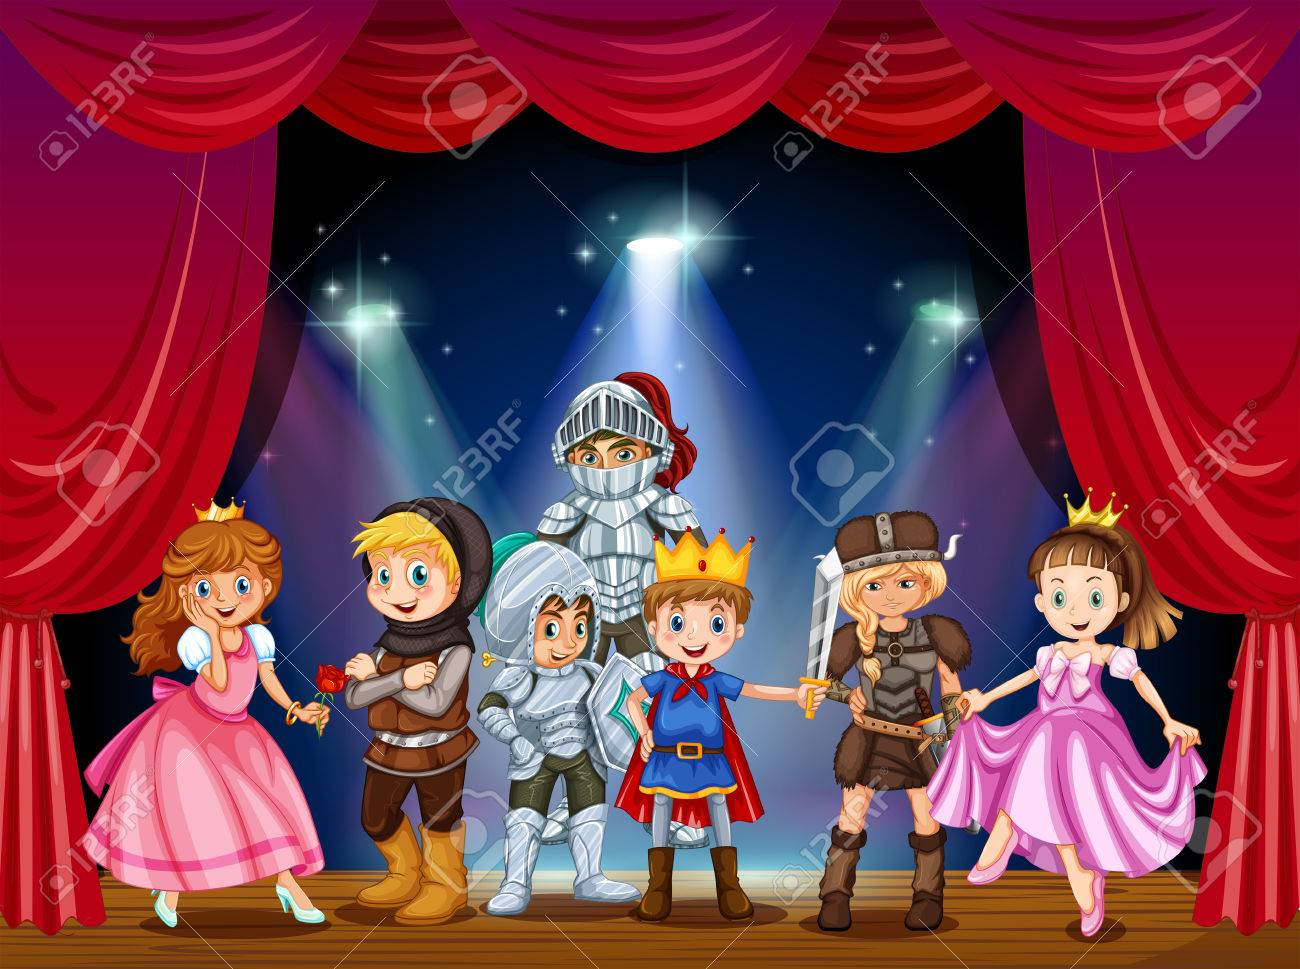 Stage play with children in costumes illustration - 51244390